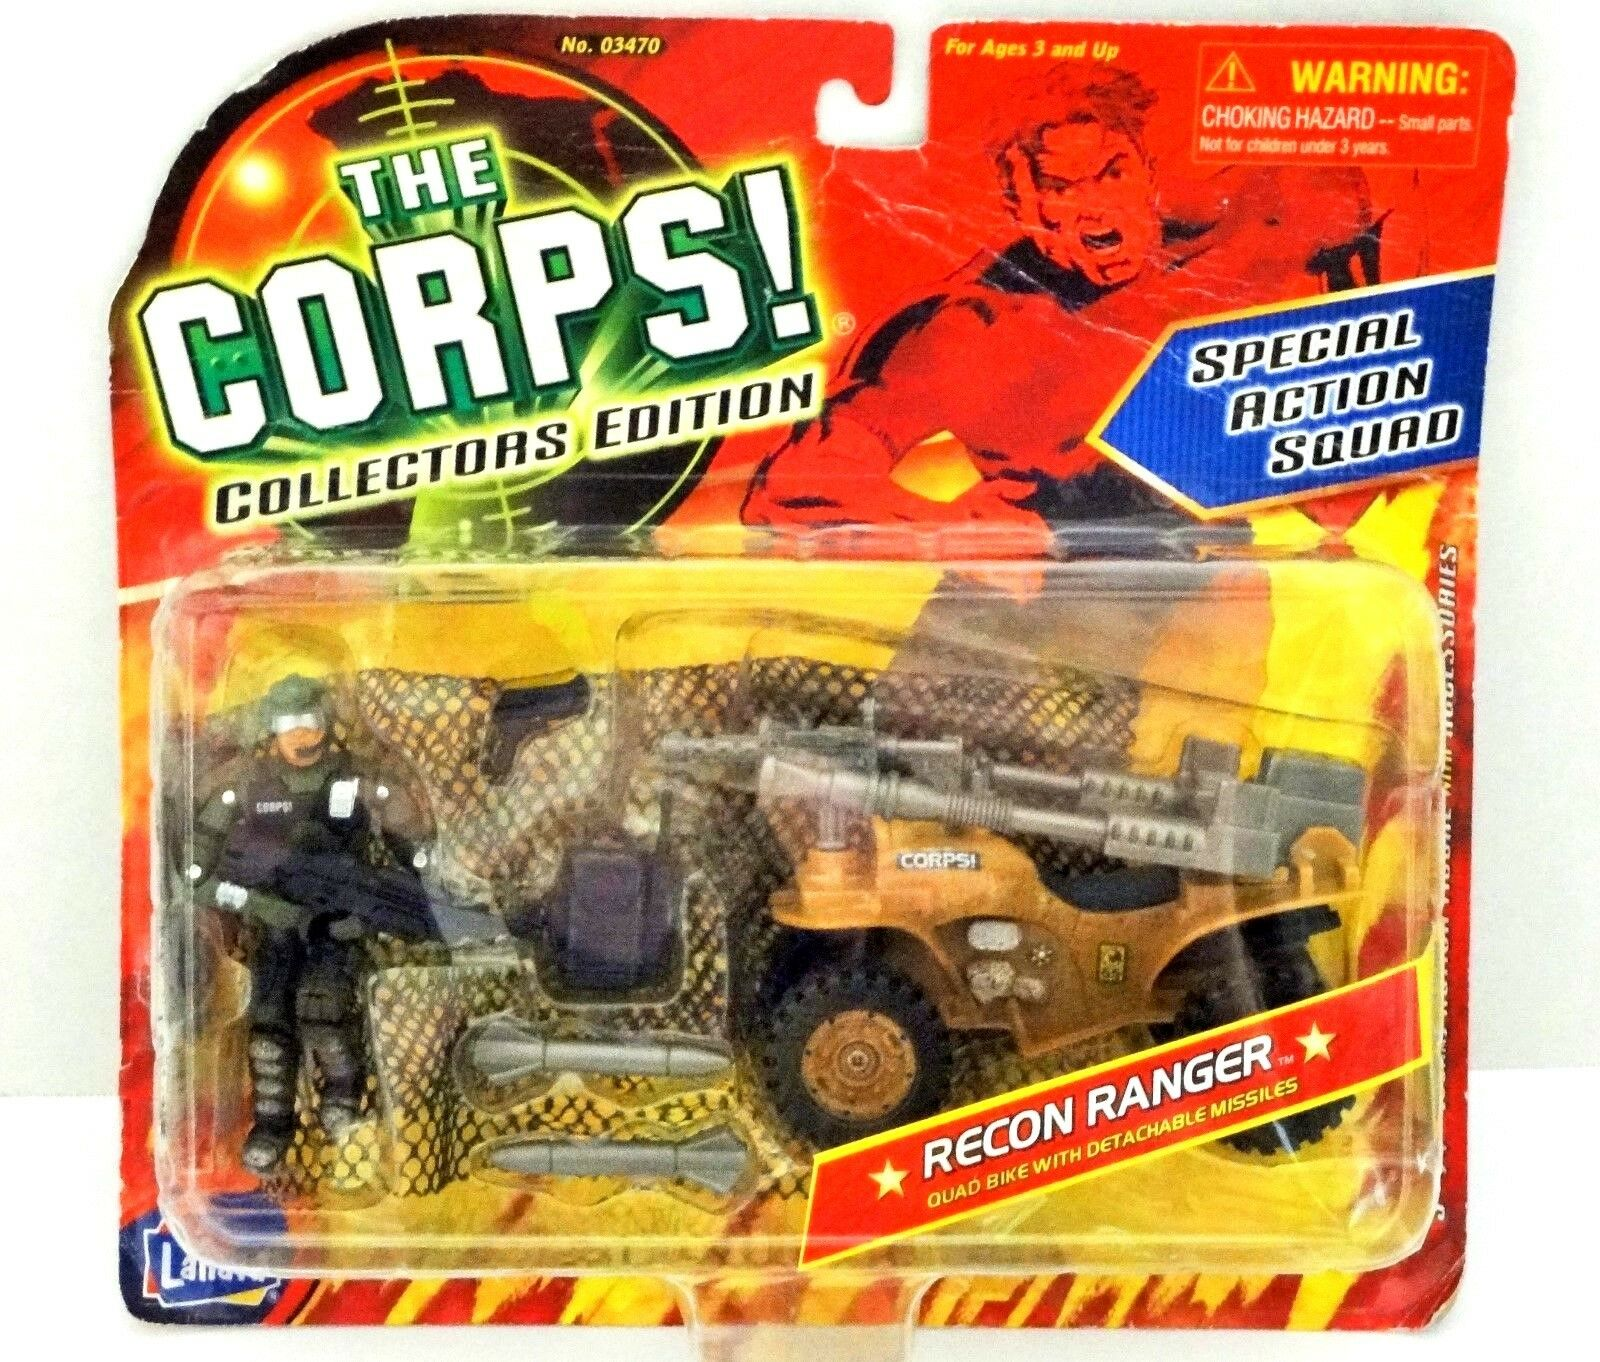 The CORPS CORPS CORPS Special Action Squad Recon Ranger Collectors Edition Quad Bike Missile f3bc5c